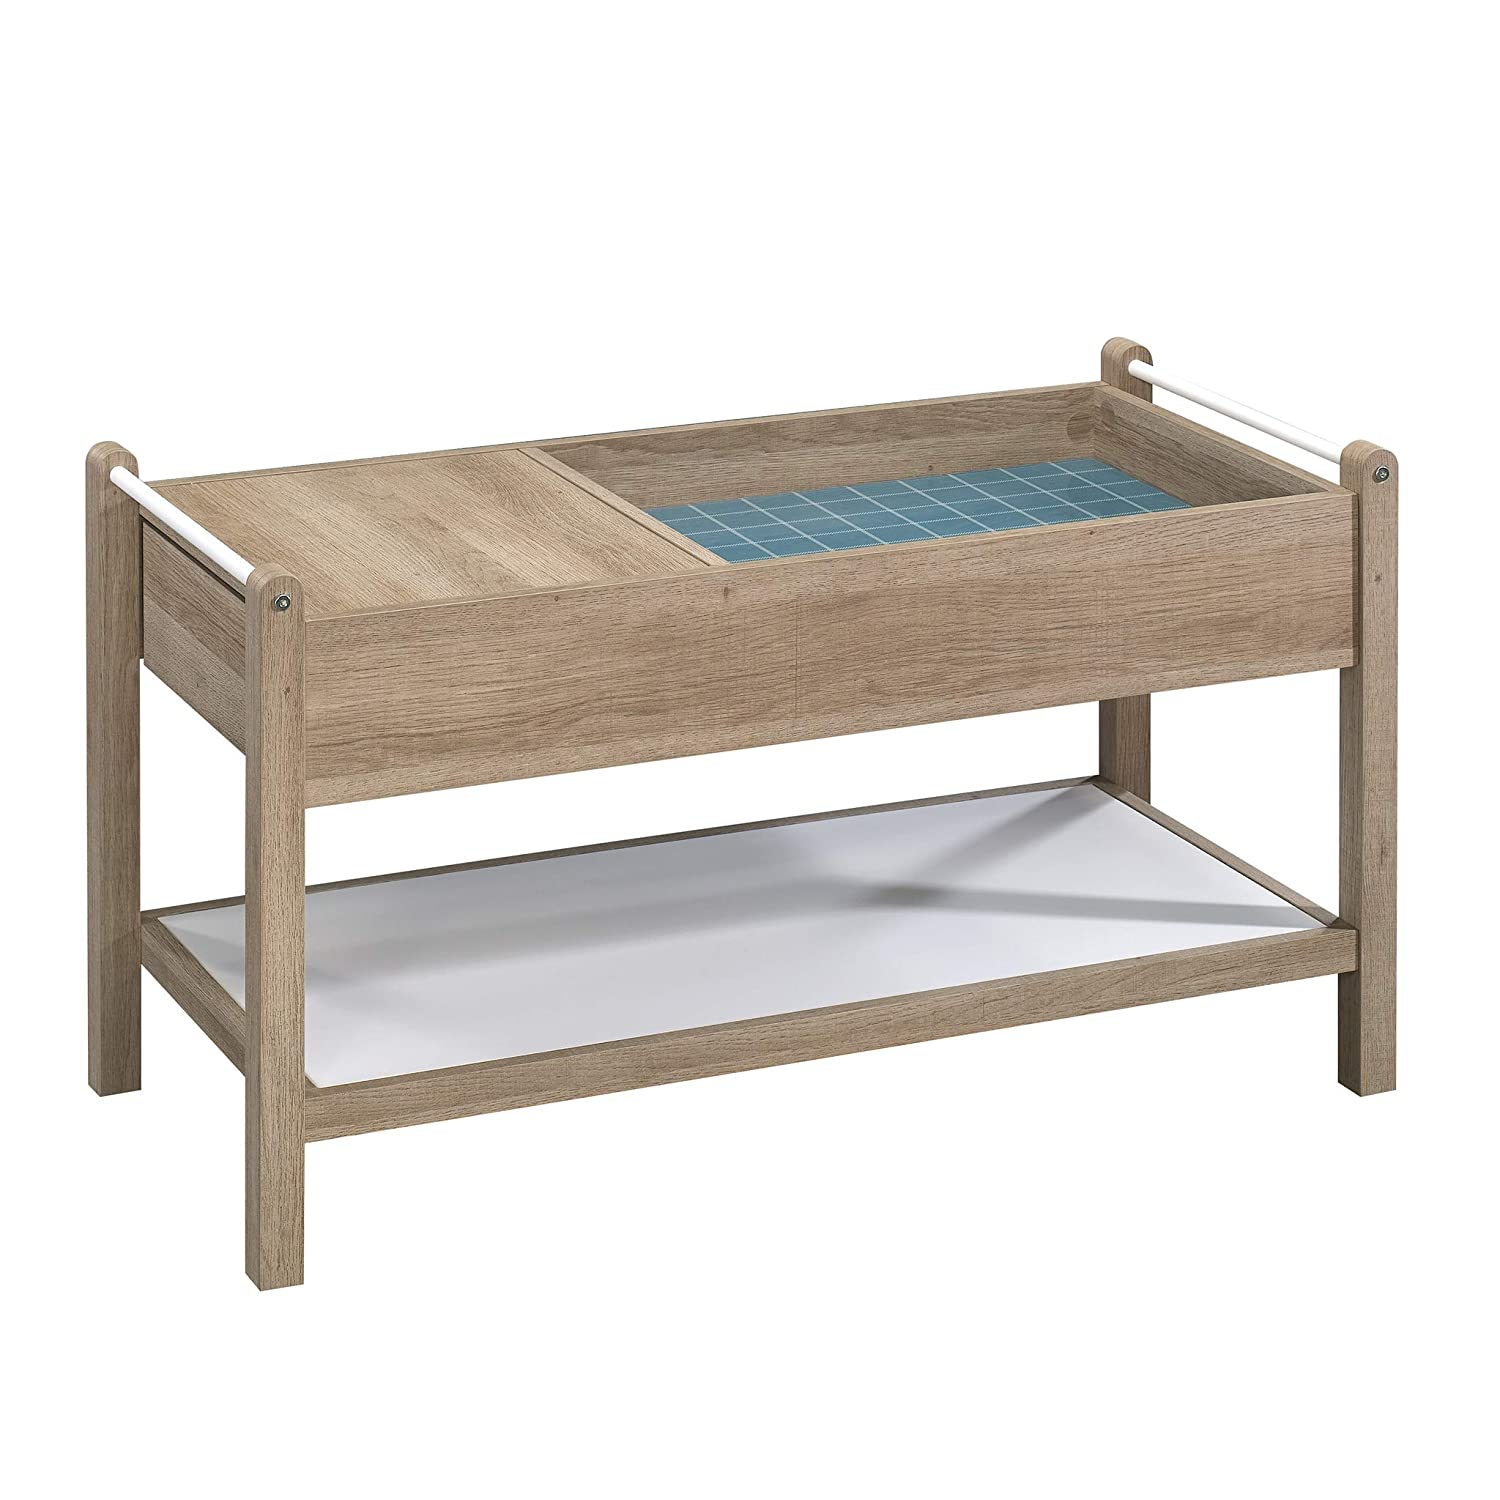 Sauder Anda Norr Storage Coffee Table in Sky Oak and White